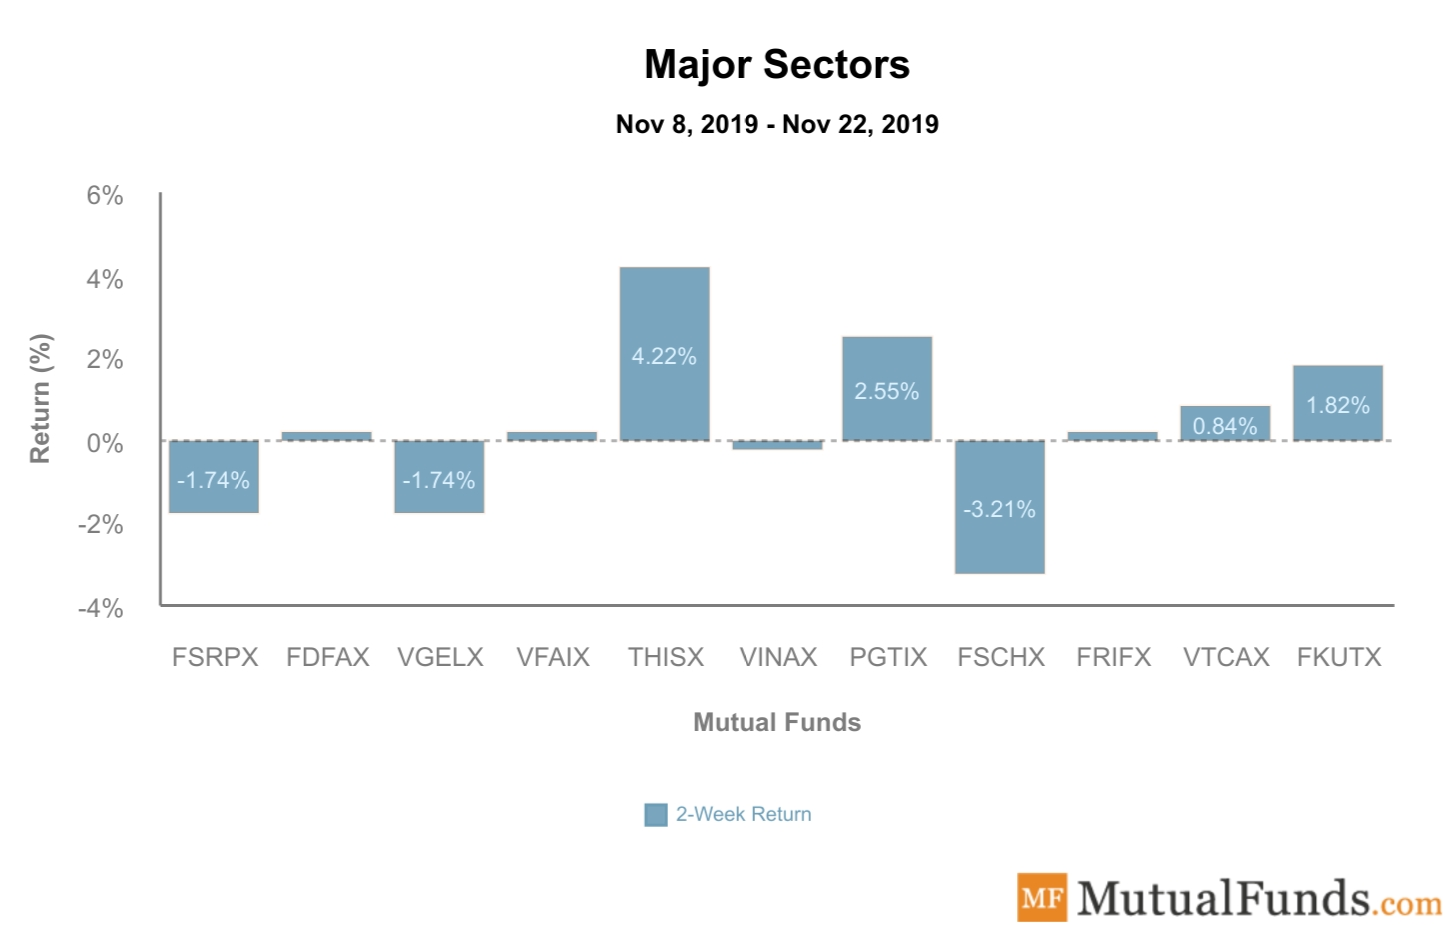 Major Sectors Performance Nov 26, 2019